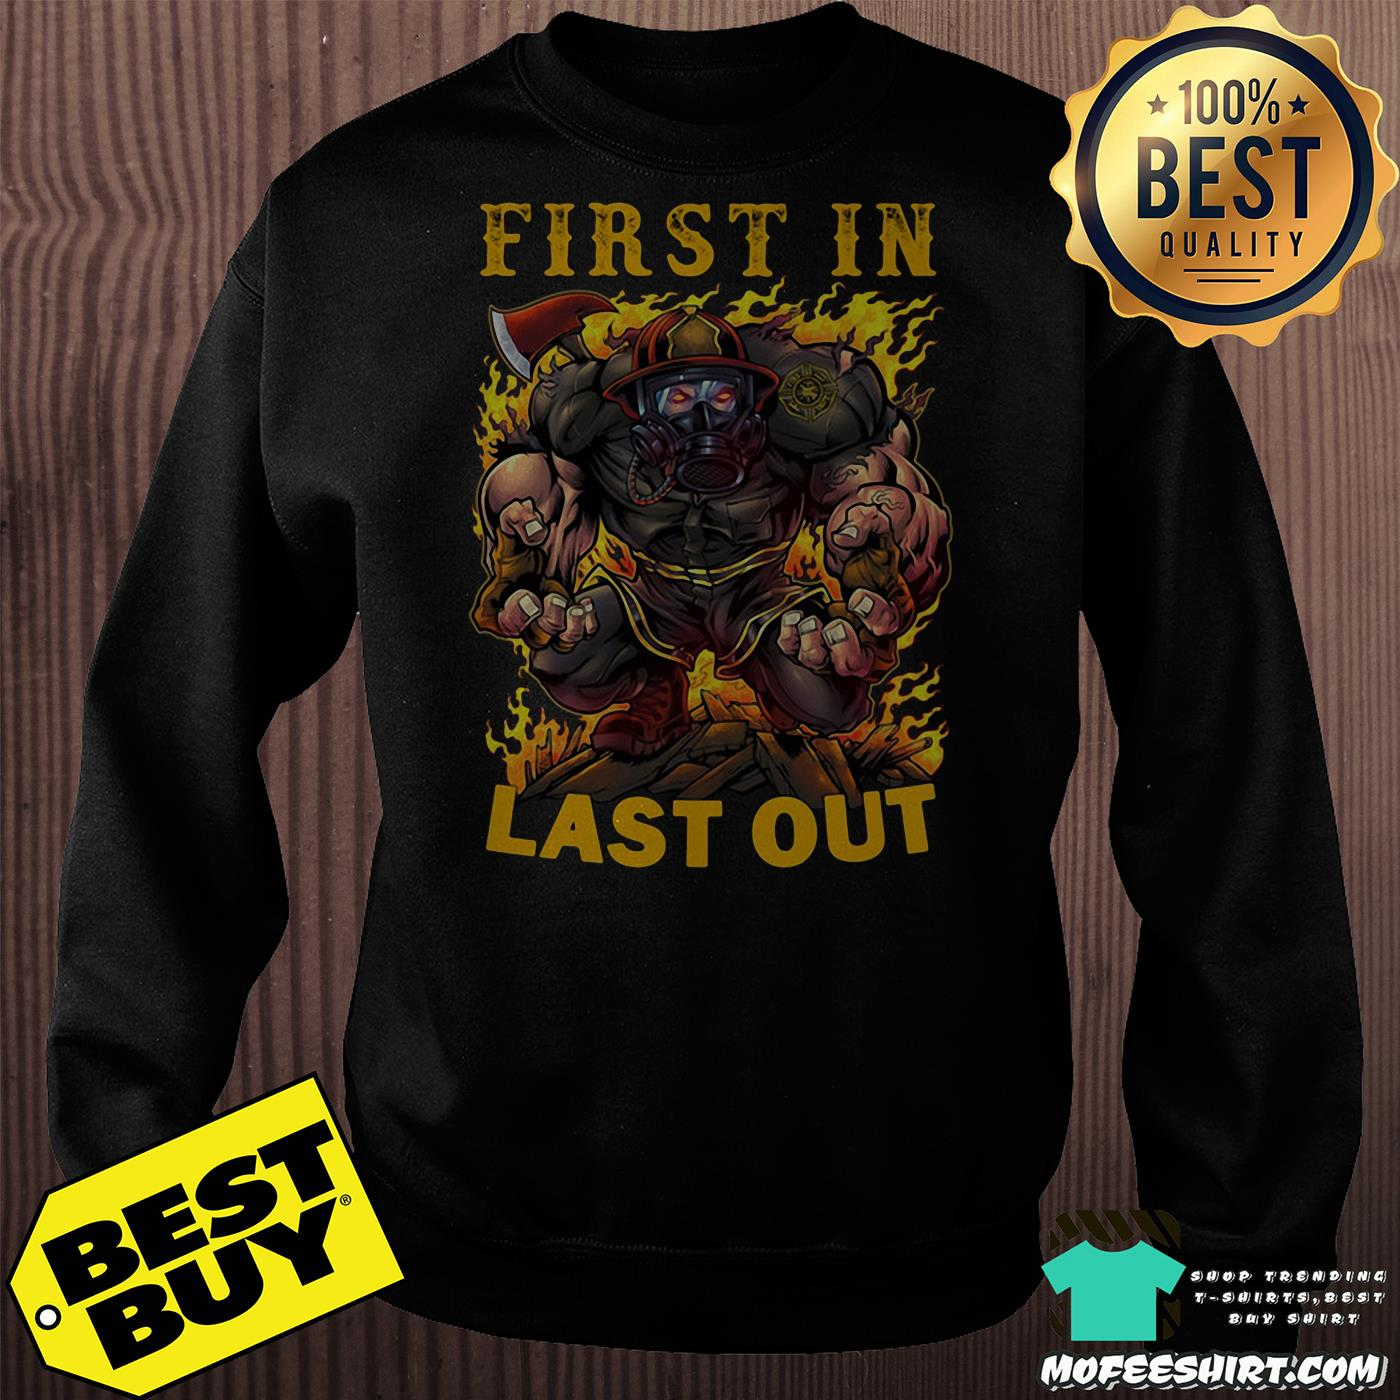 First In Last Out Firefighter Shirt